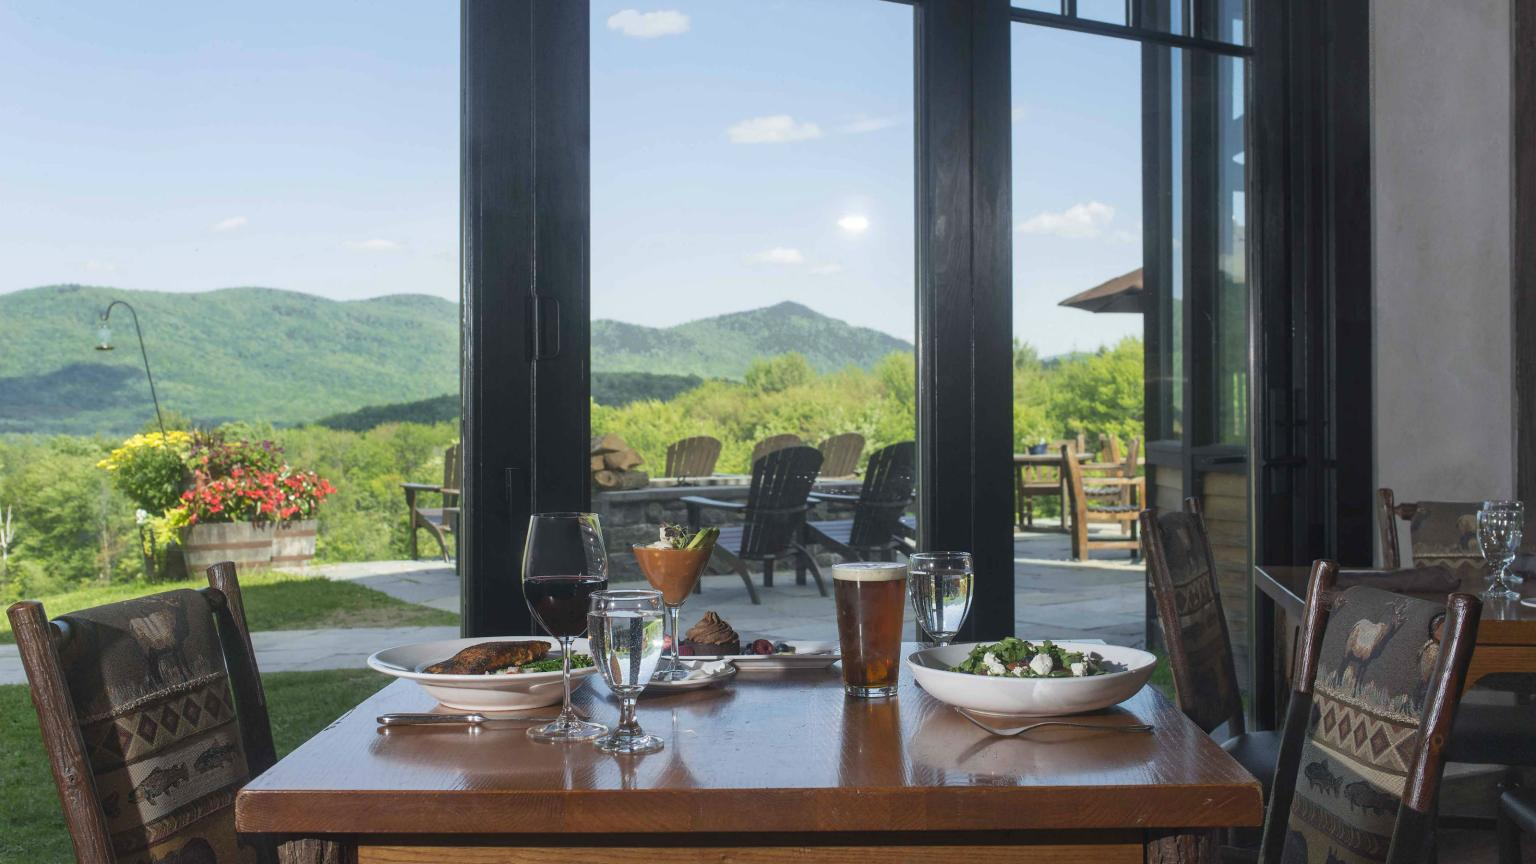 Mountain Top Inn & Resort dining room view